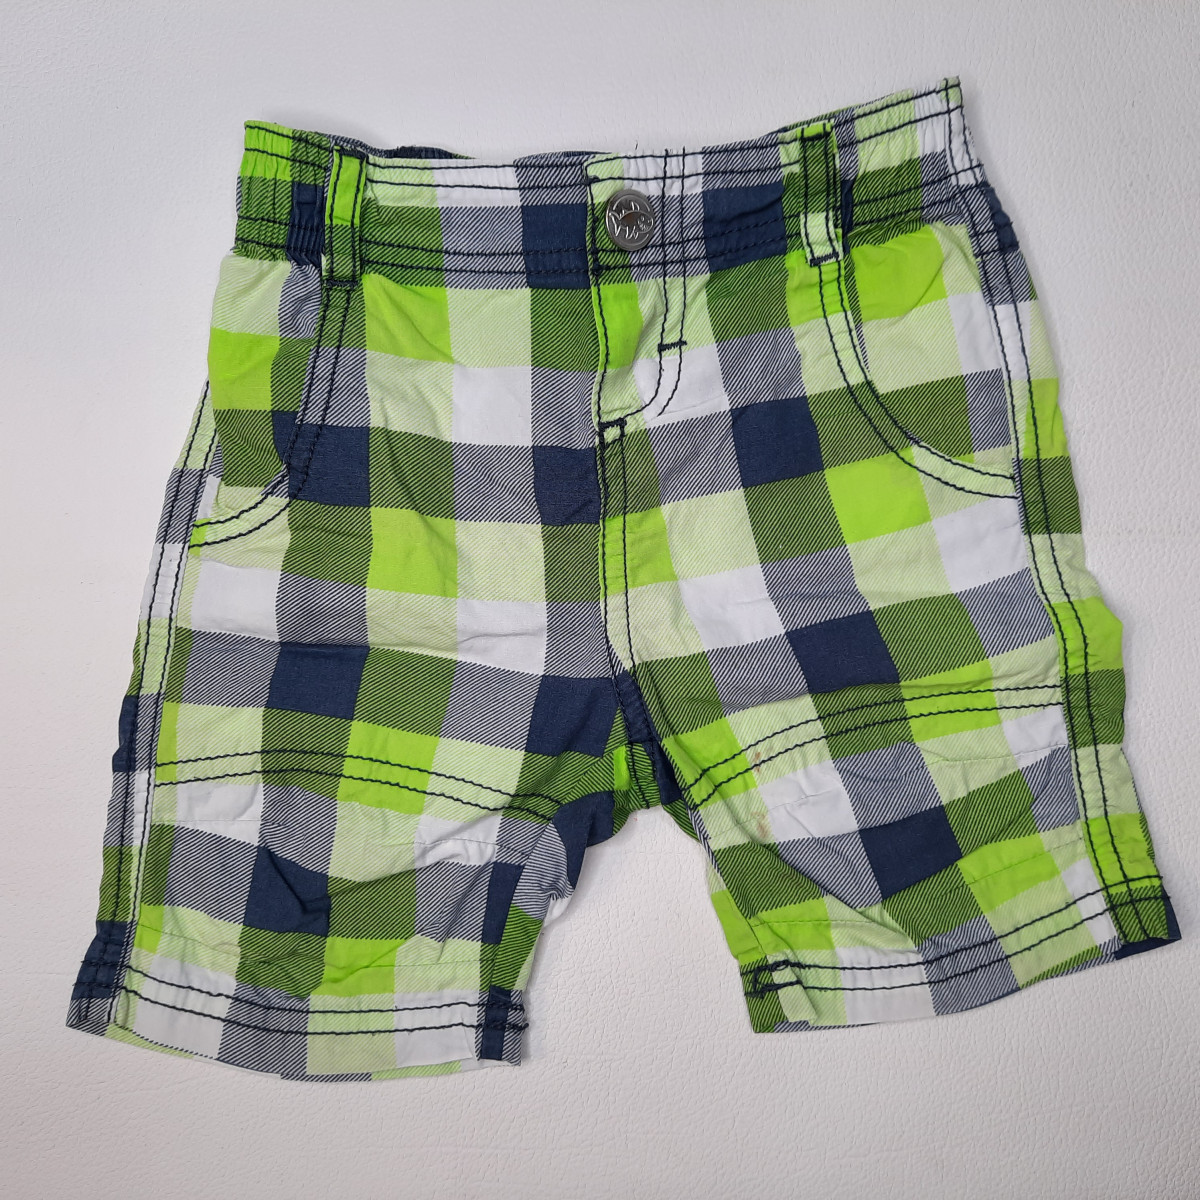 Shorts, Bermudas - photo 35